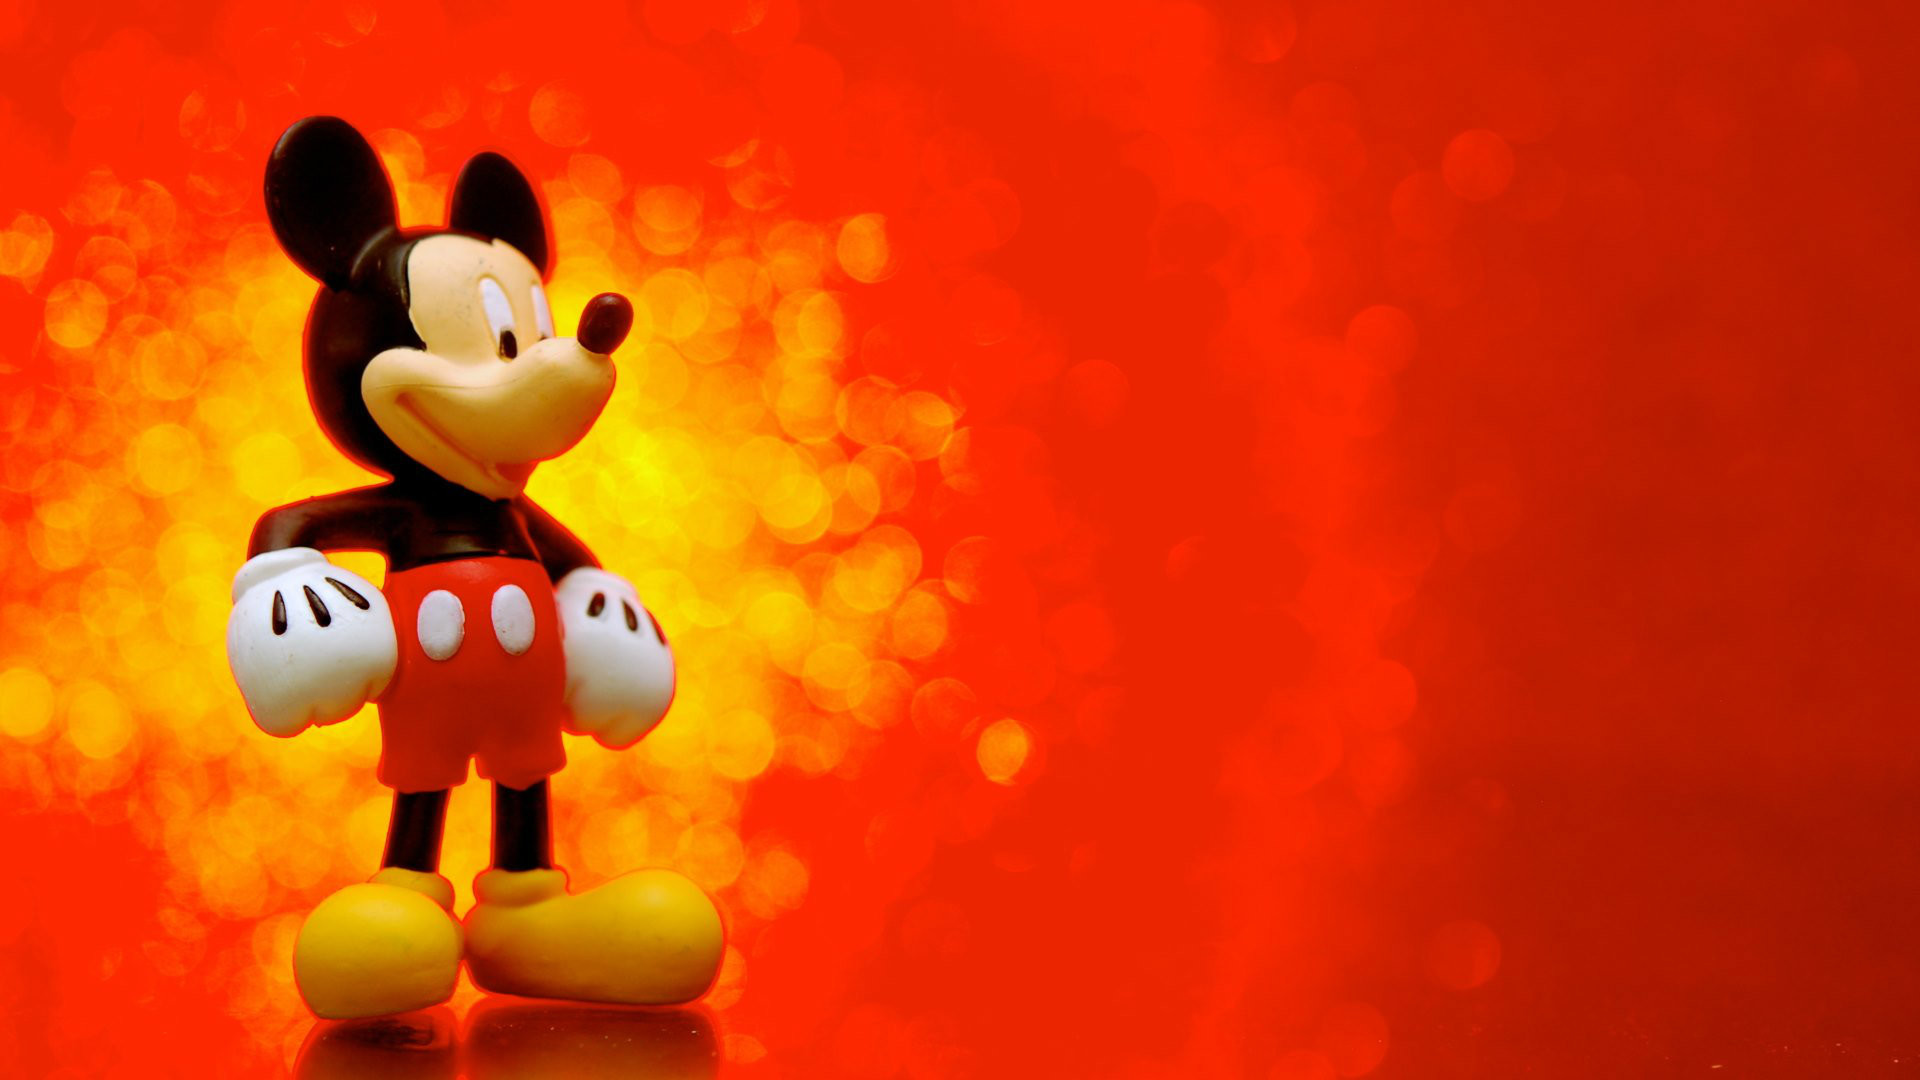 Free Download Mickey Mouse Cartoon HD Wallpaper